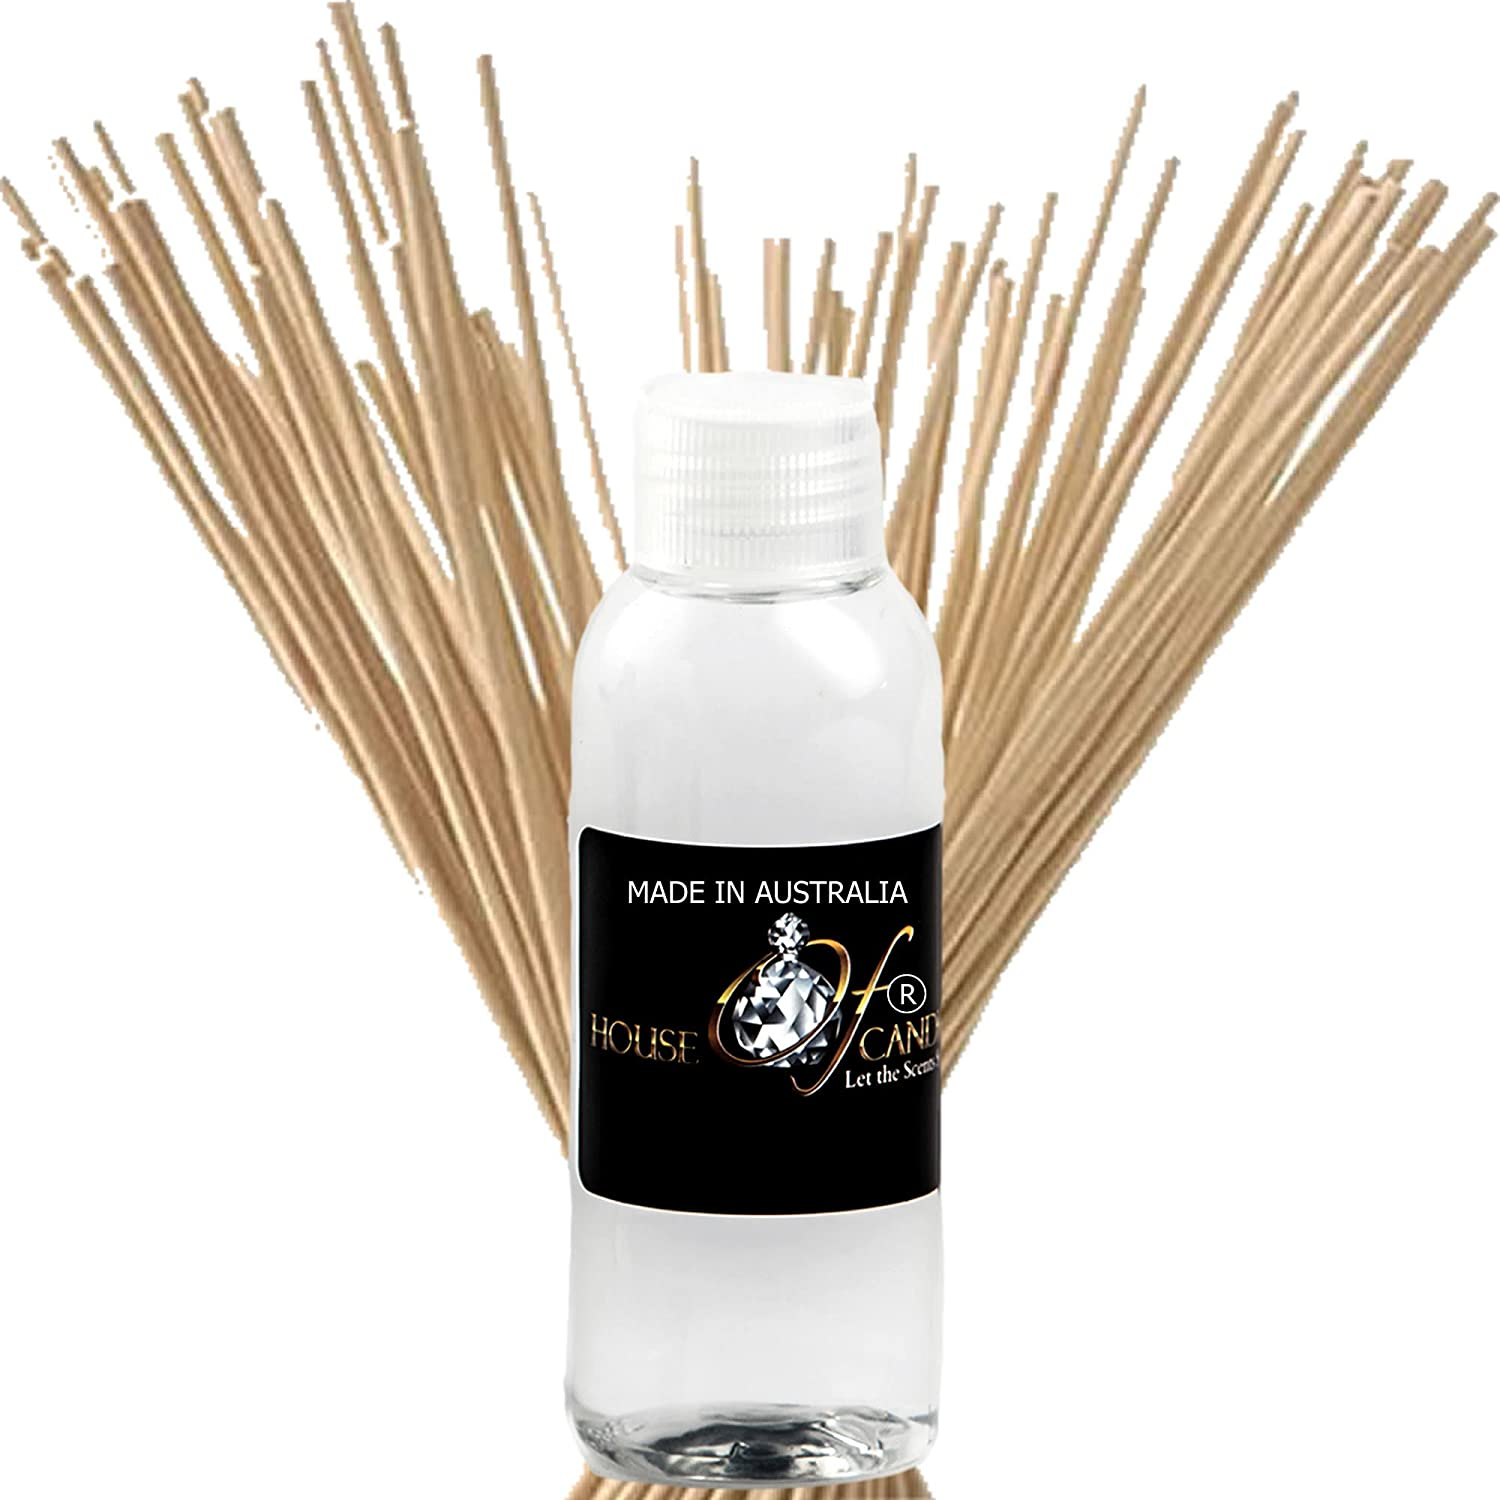 Black Rose & Oud Reed Diffuser Fragrance Oil Refill 50ml/1.7oz + Bonus 20xReeds House Of Candles